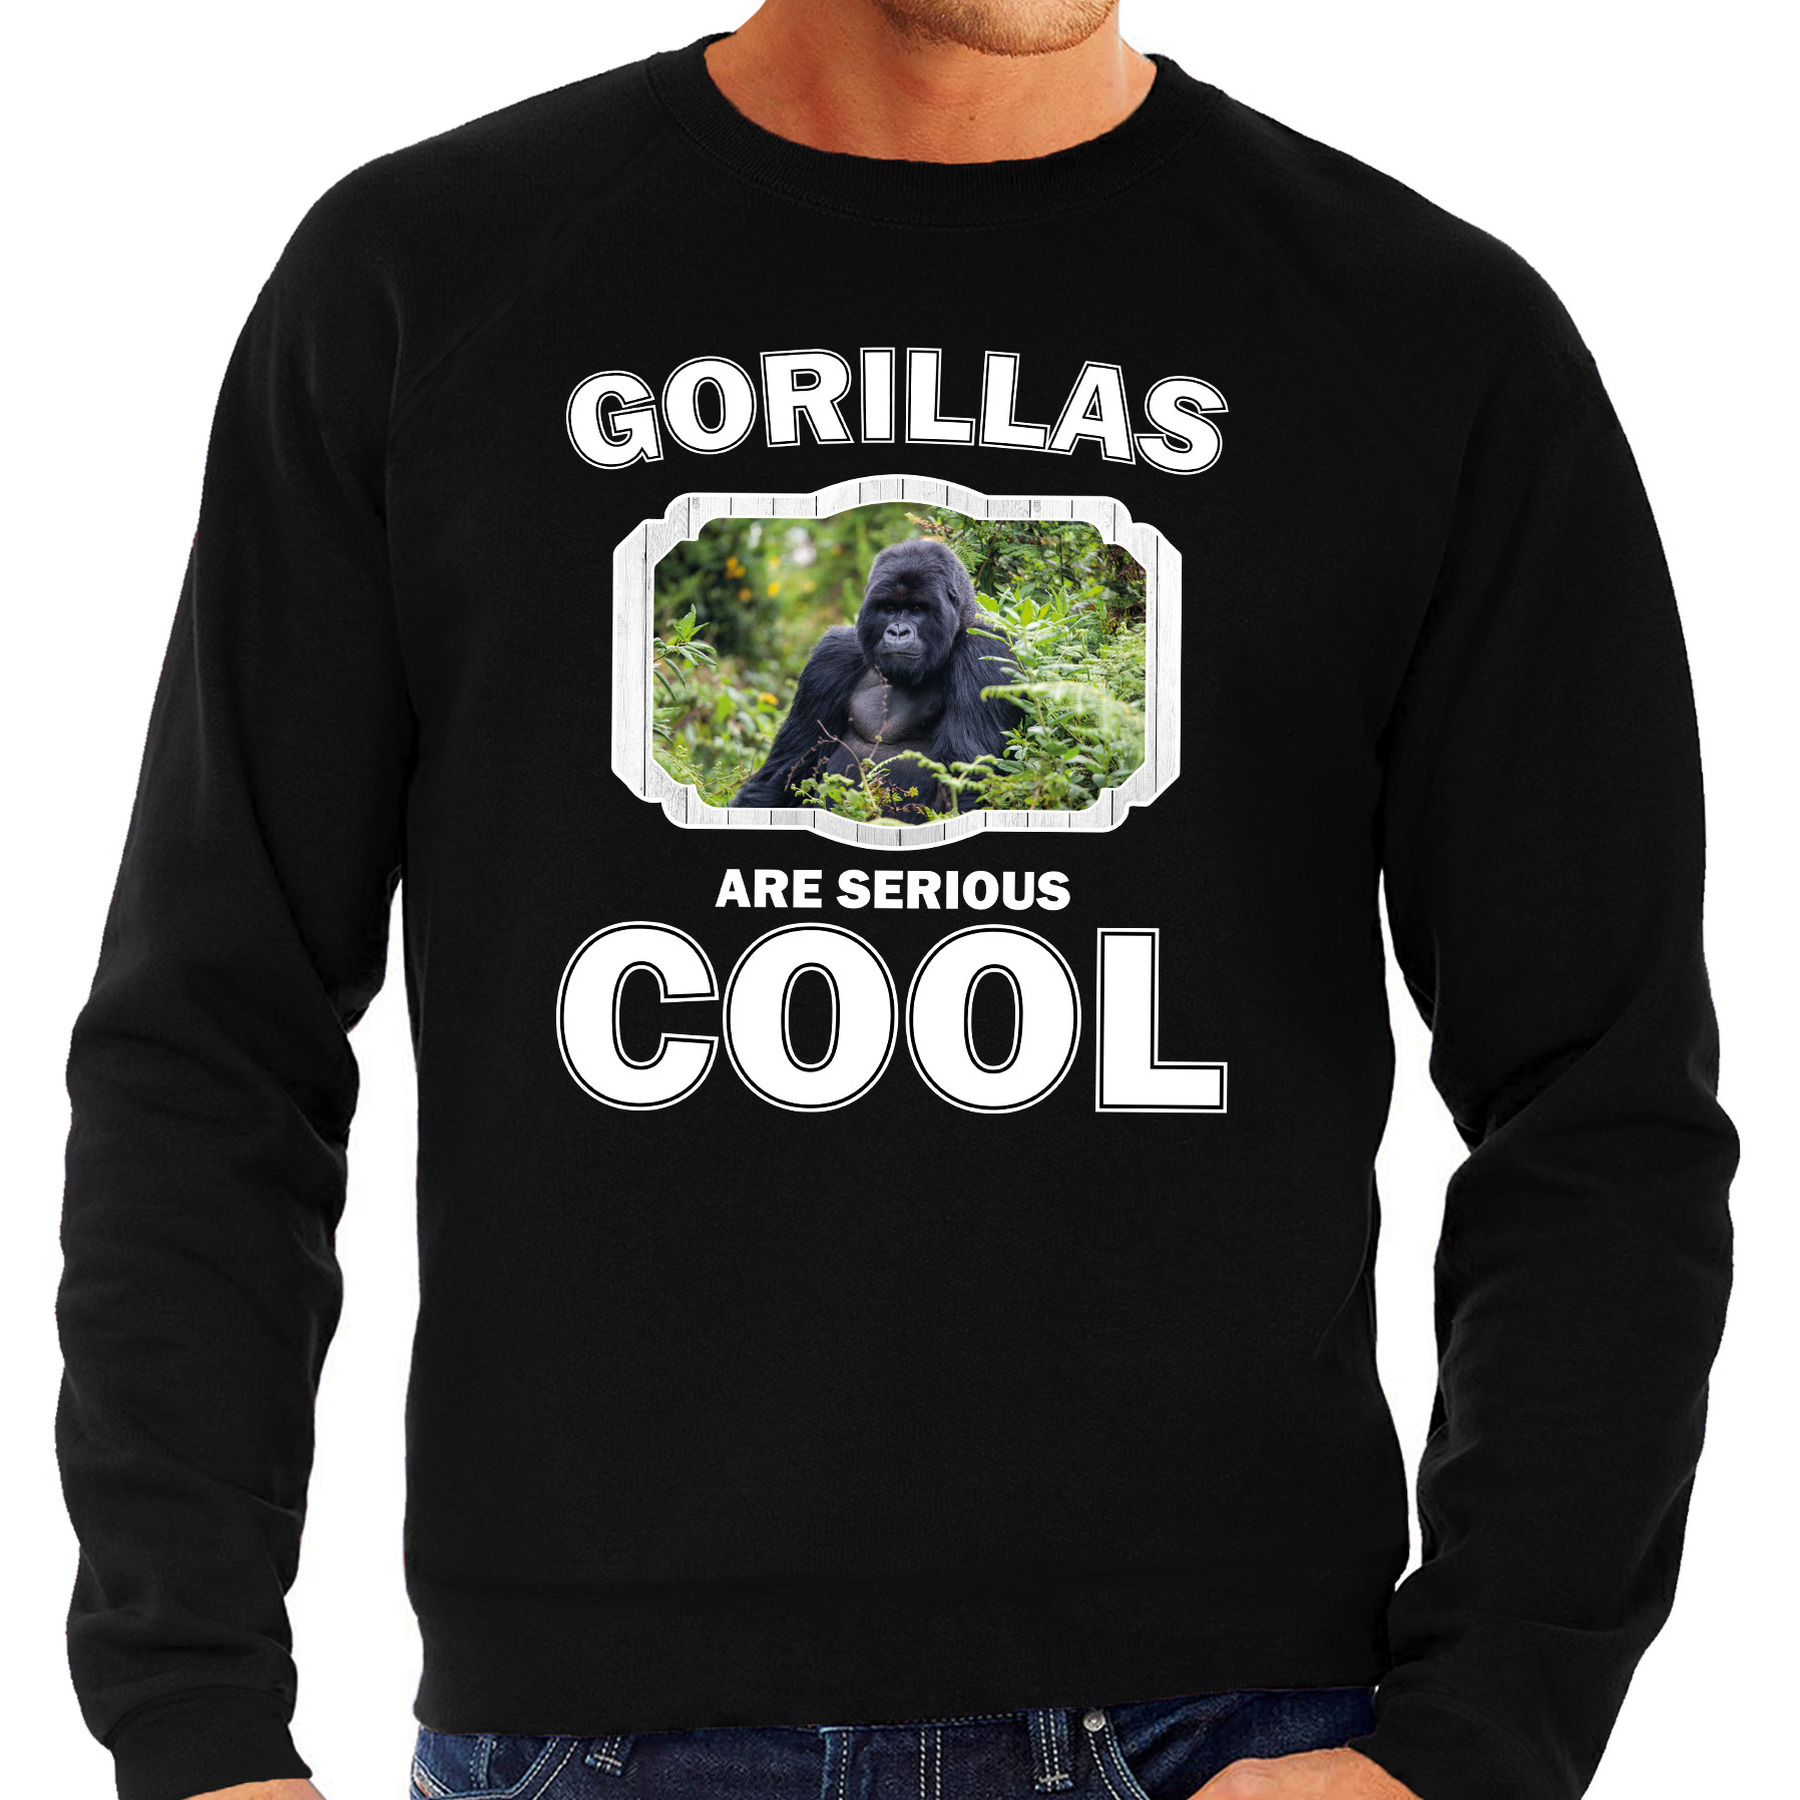 Sweater gorillas are serious cool zwart heren - gorilla apen/ gorilla trui